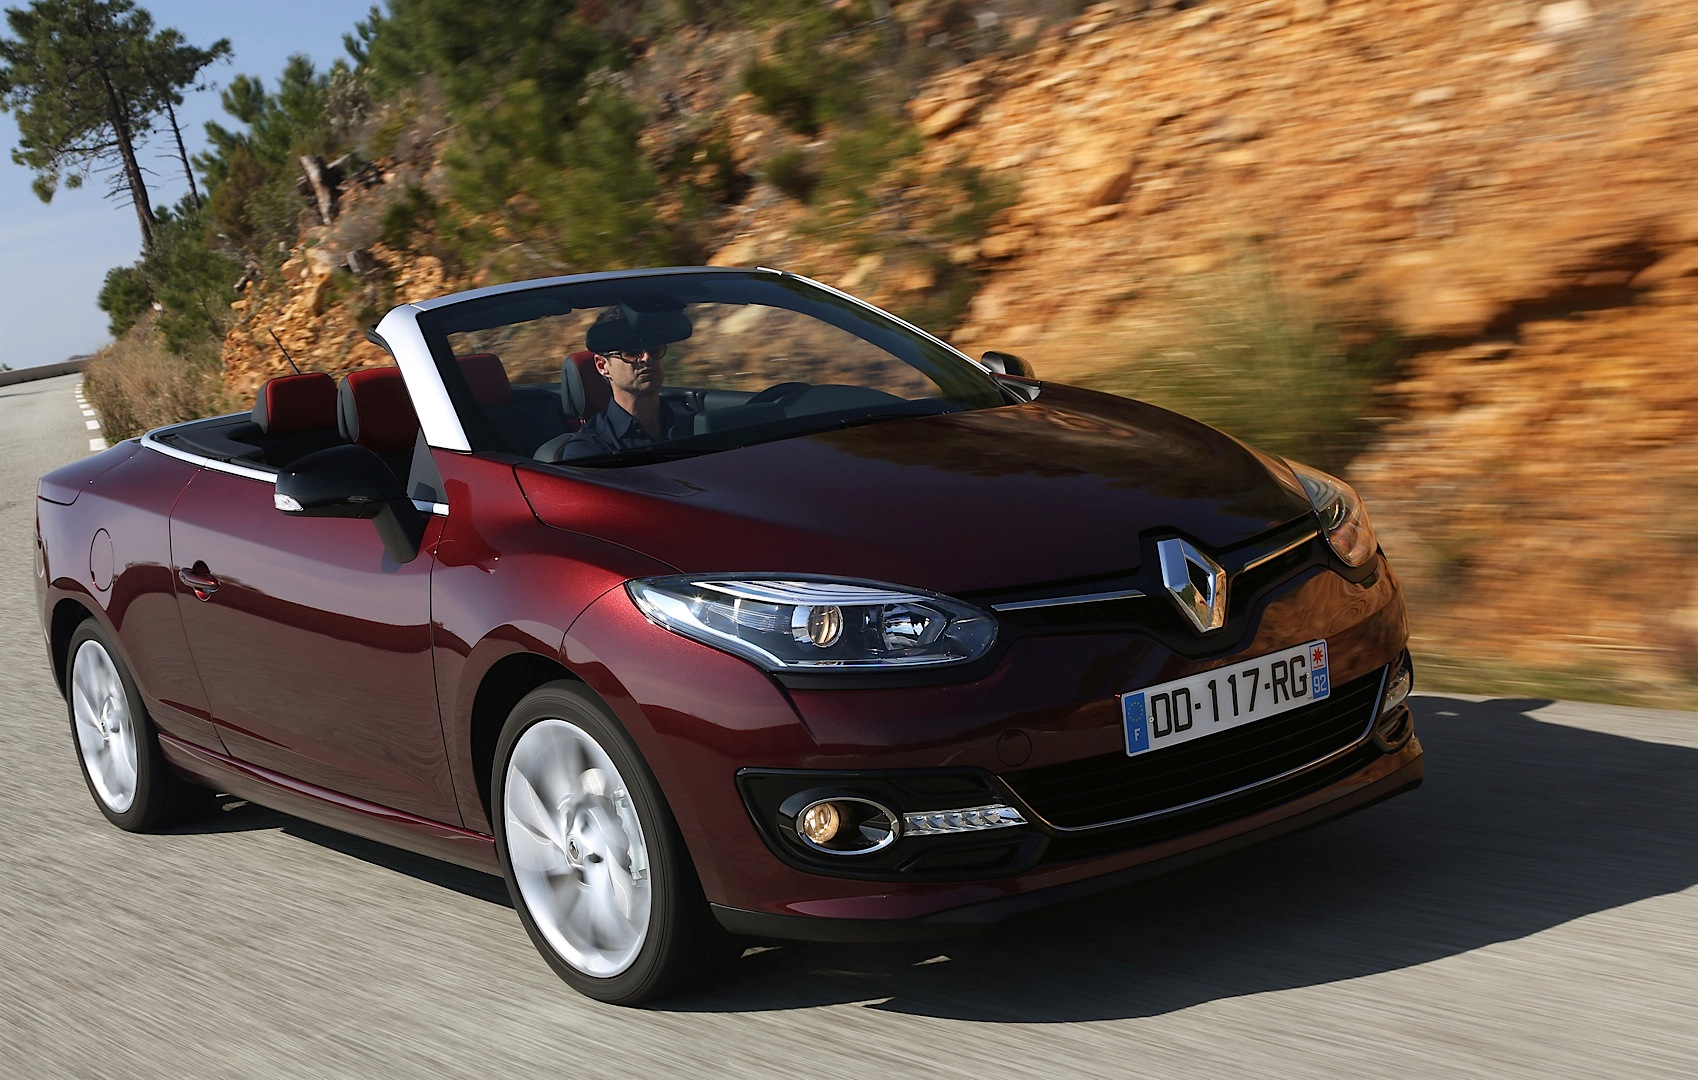 Renault Launched Megane Cc Facelift And 1 2 Turbo With 130